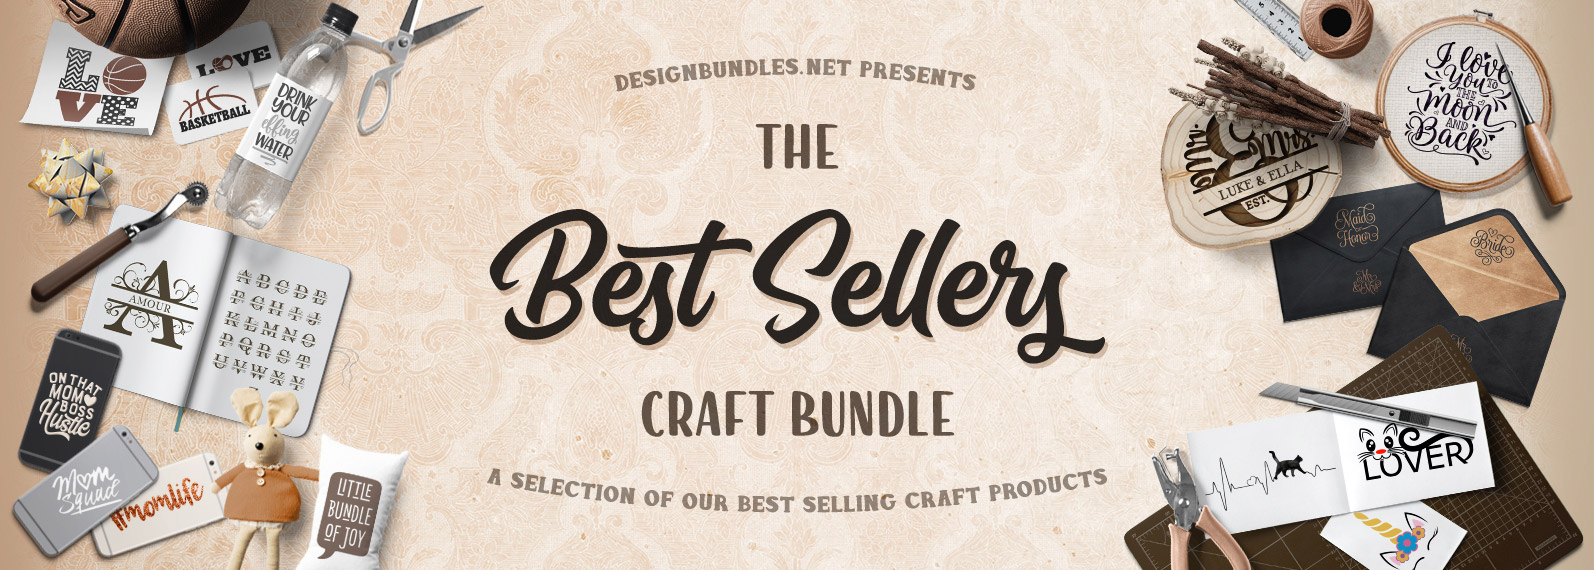 The Best Sellers Craft Bundle